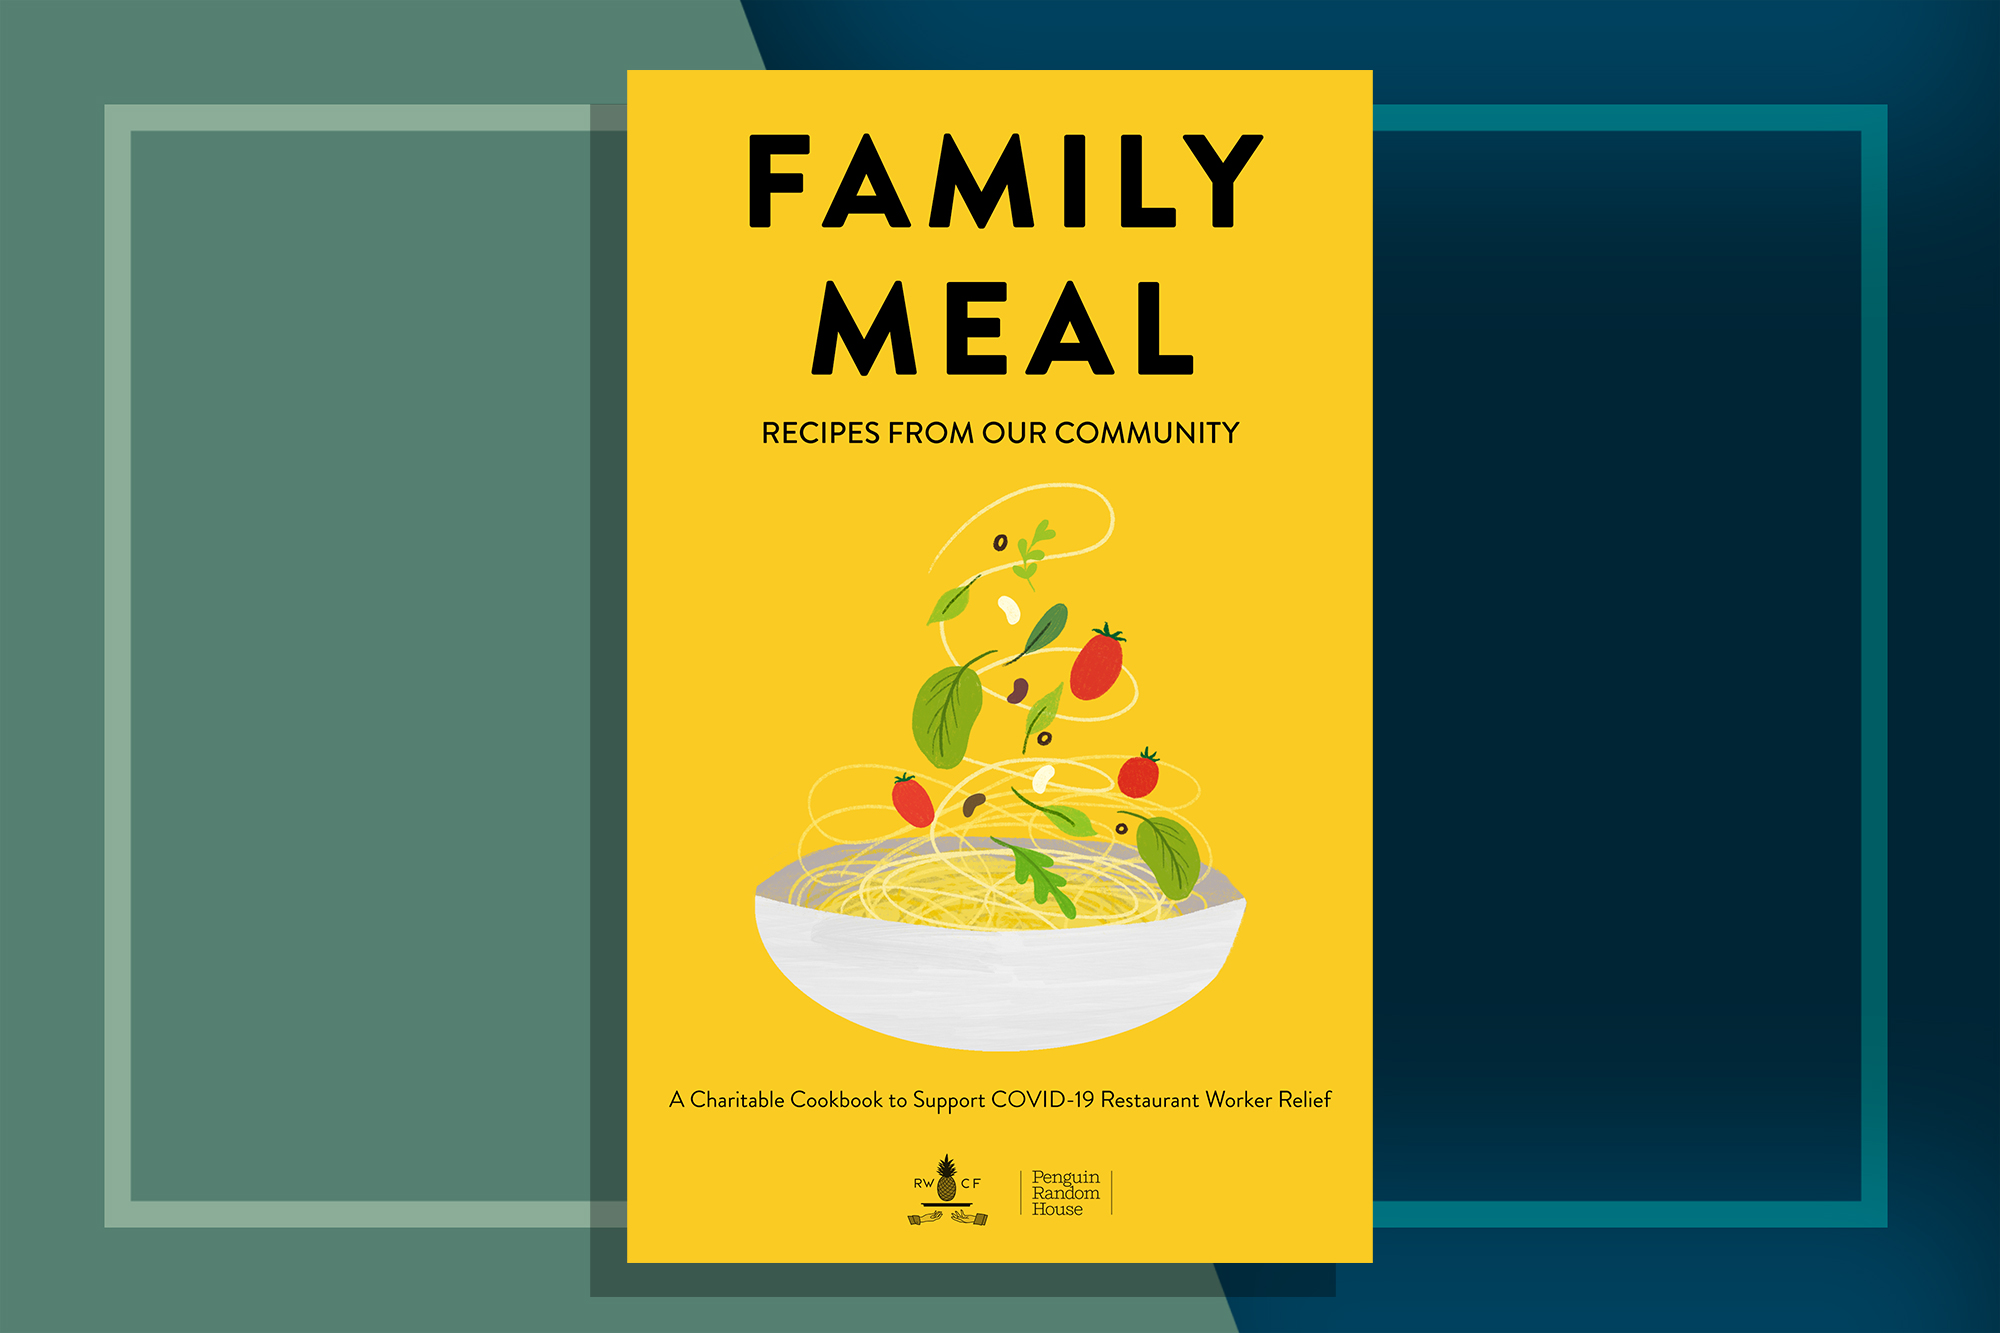 Family Meal E-Cookbook Benefitting Restaurants and Workers